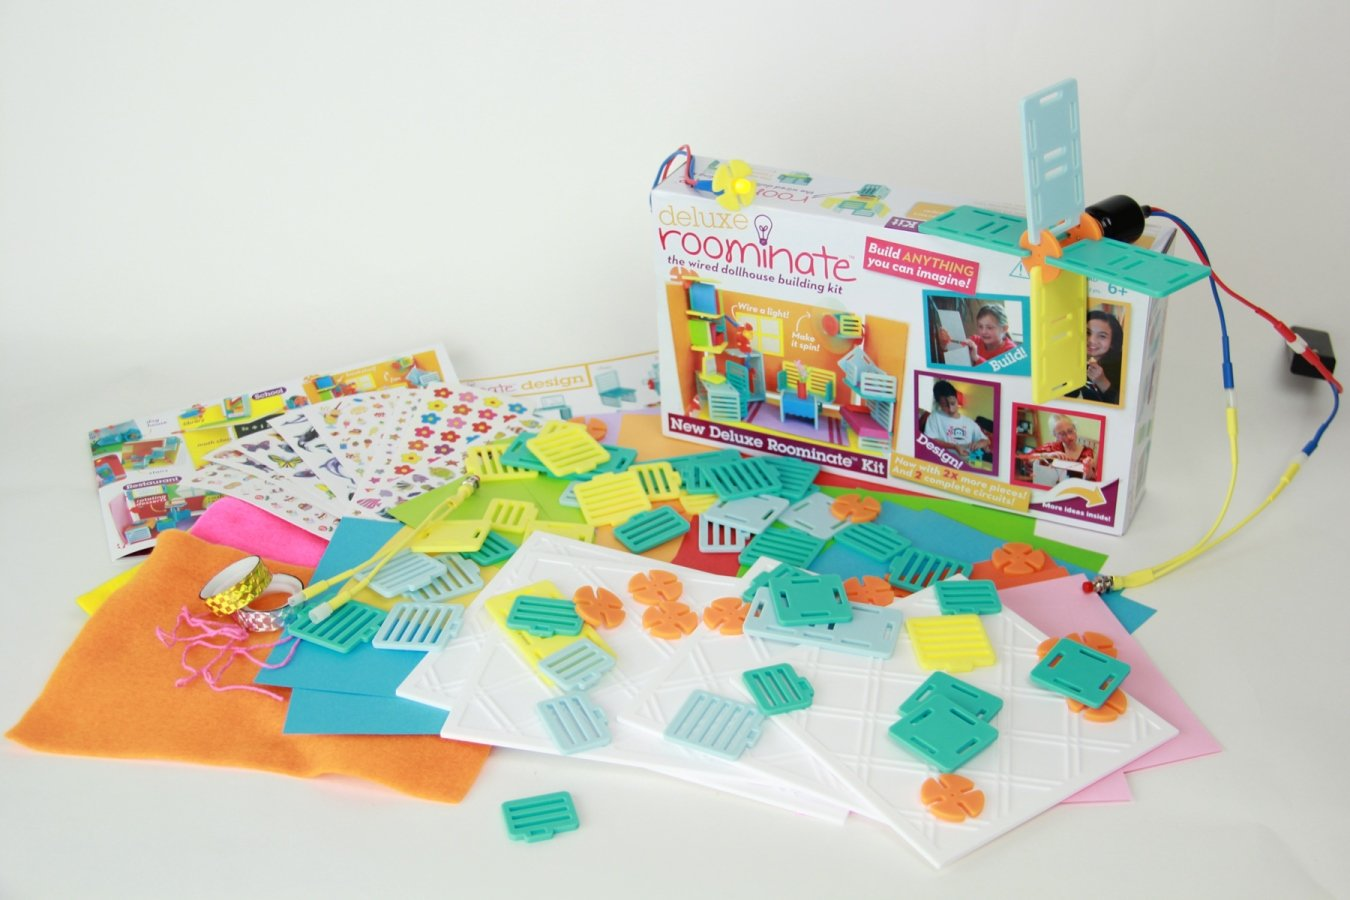 Toys For Girls Product : Amazon deluxe roominate toys games